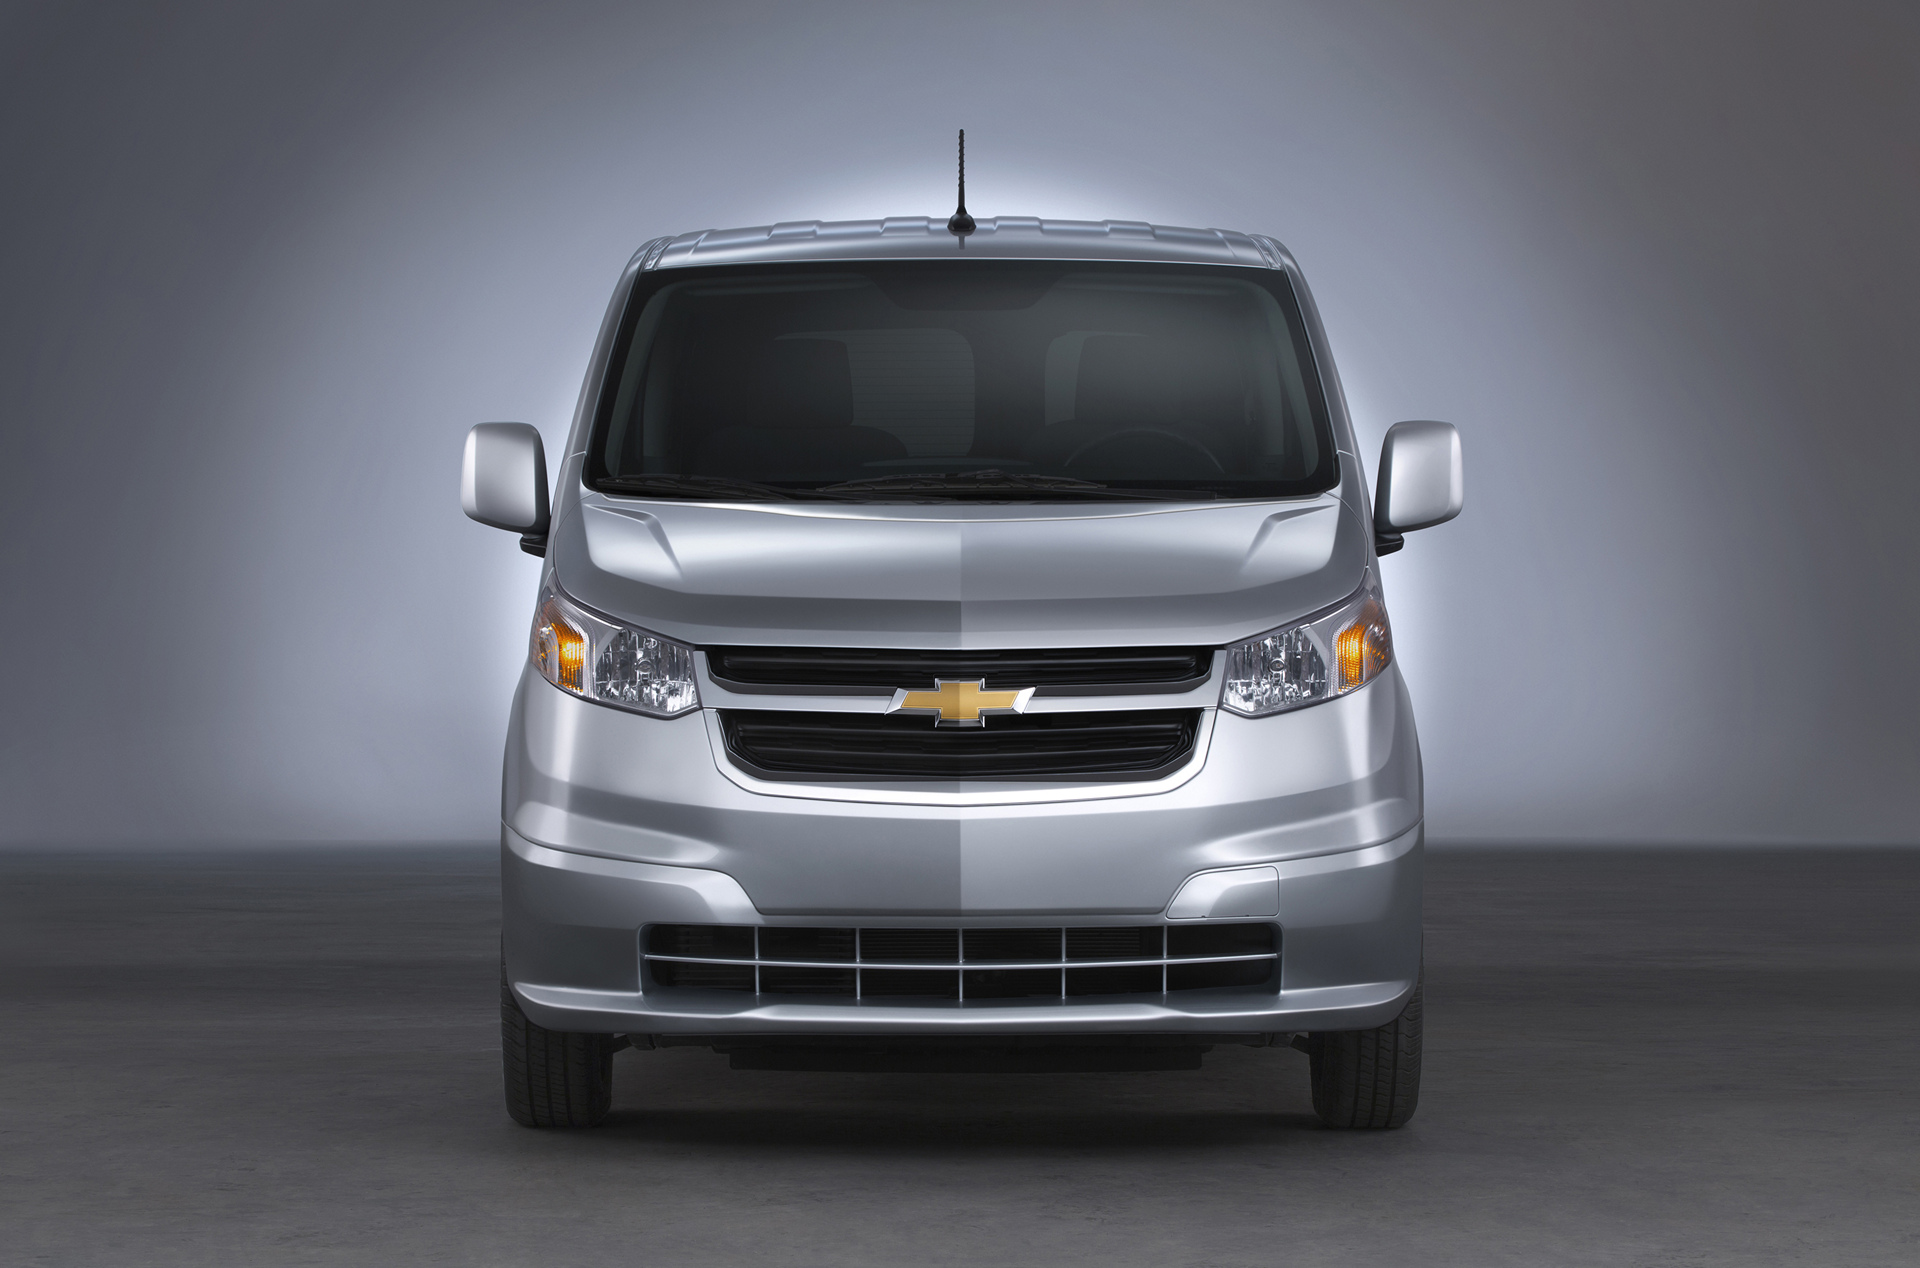 2016 Chevrolet City Express © General Motors